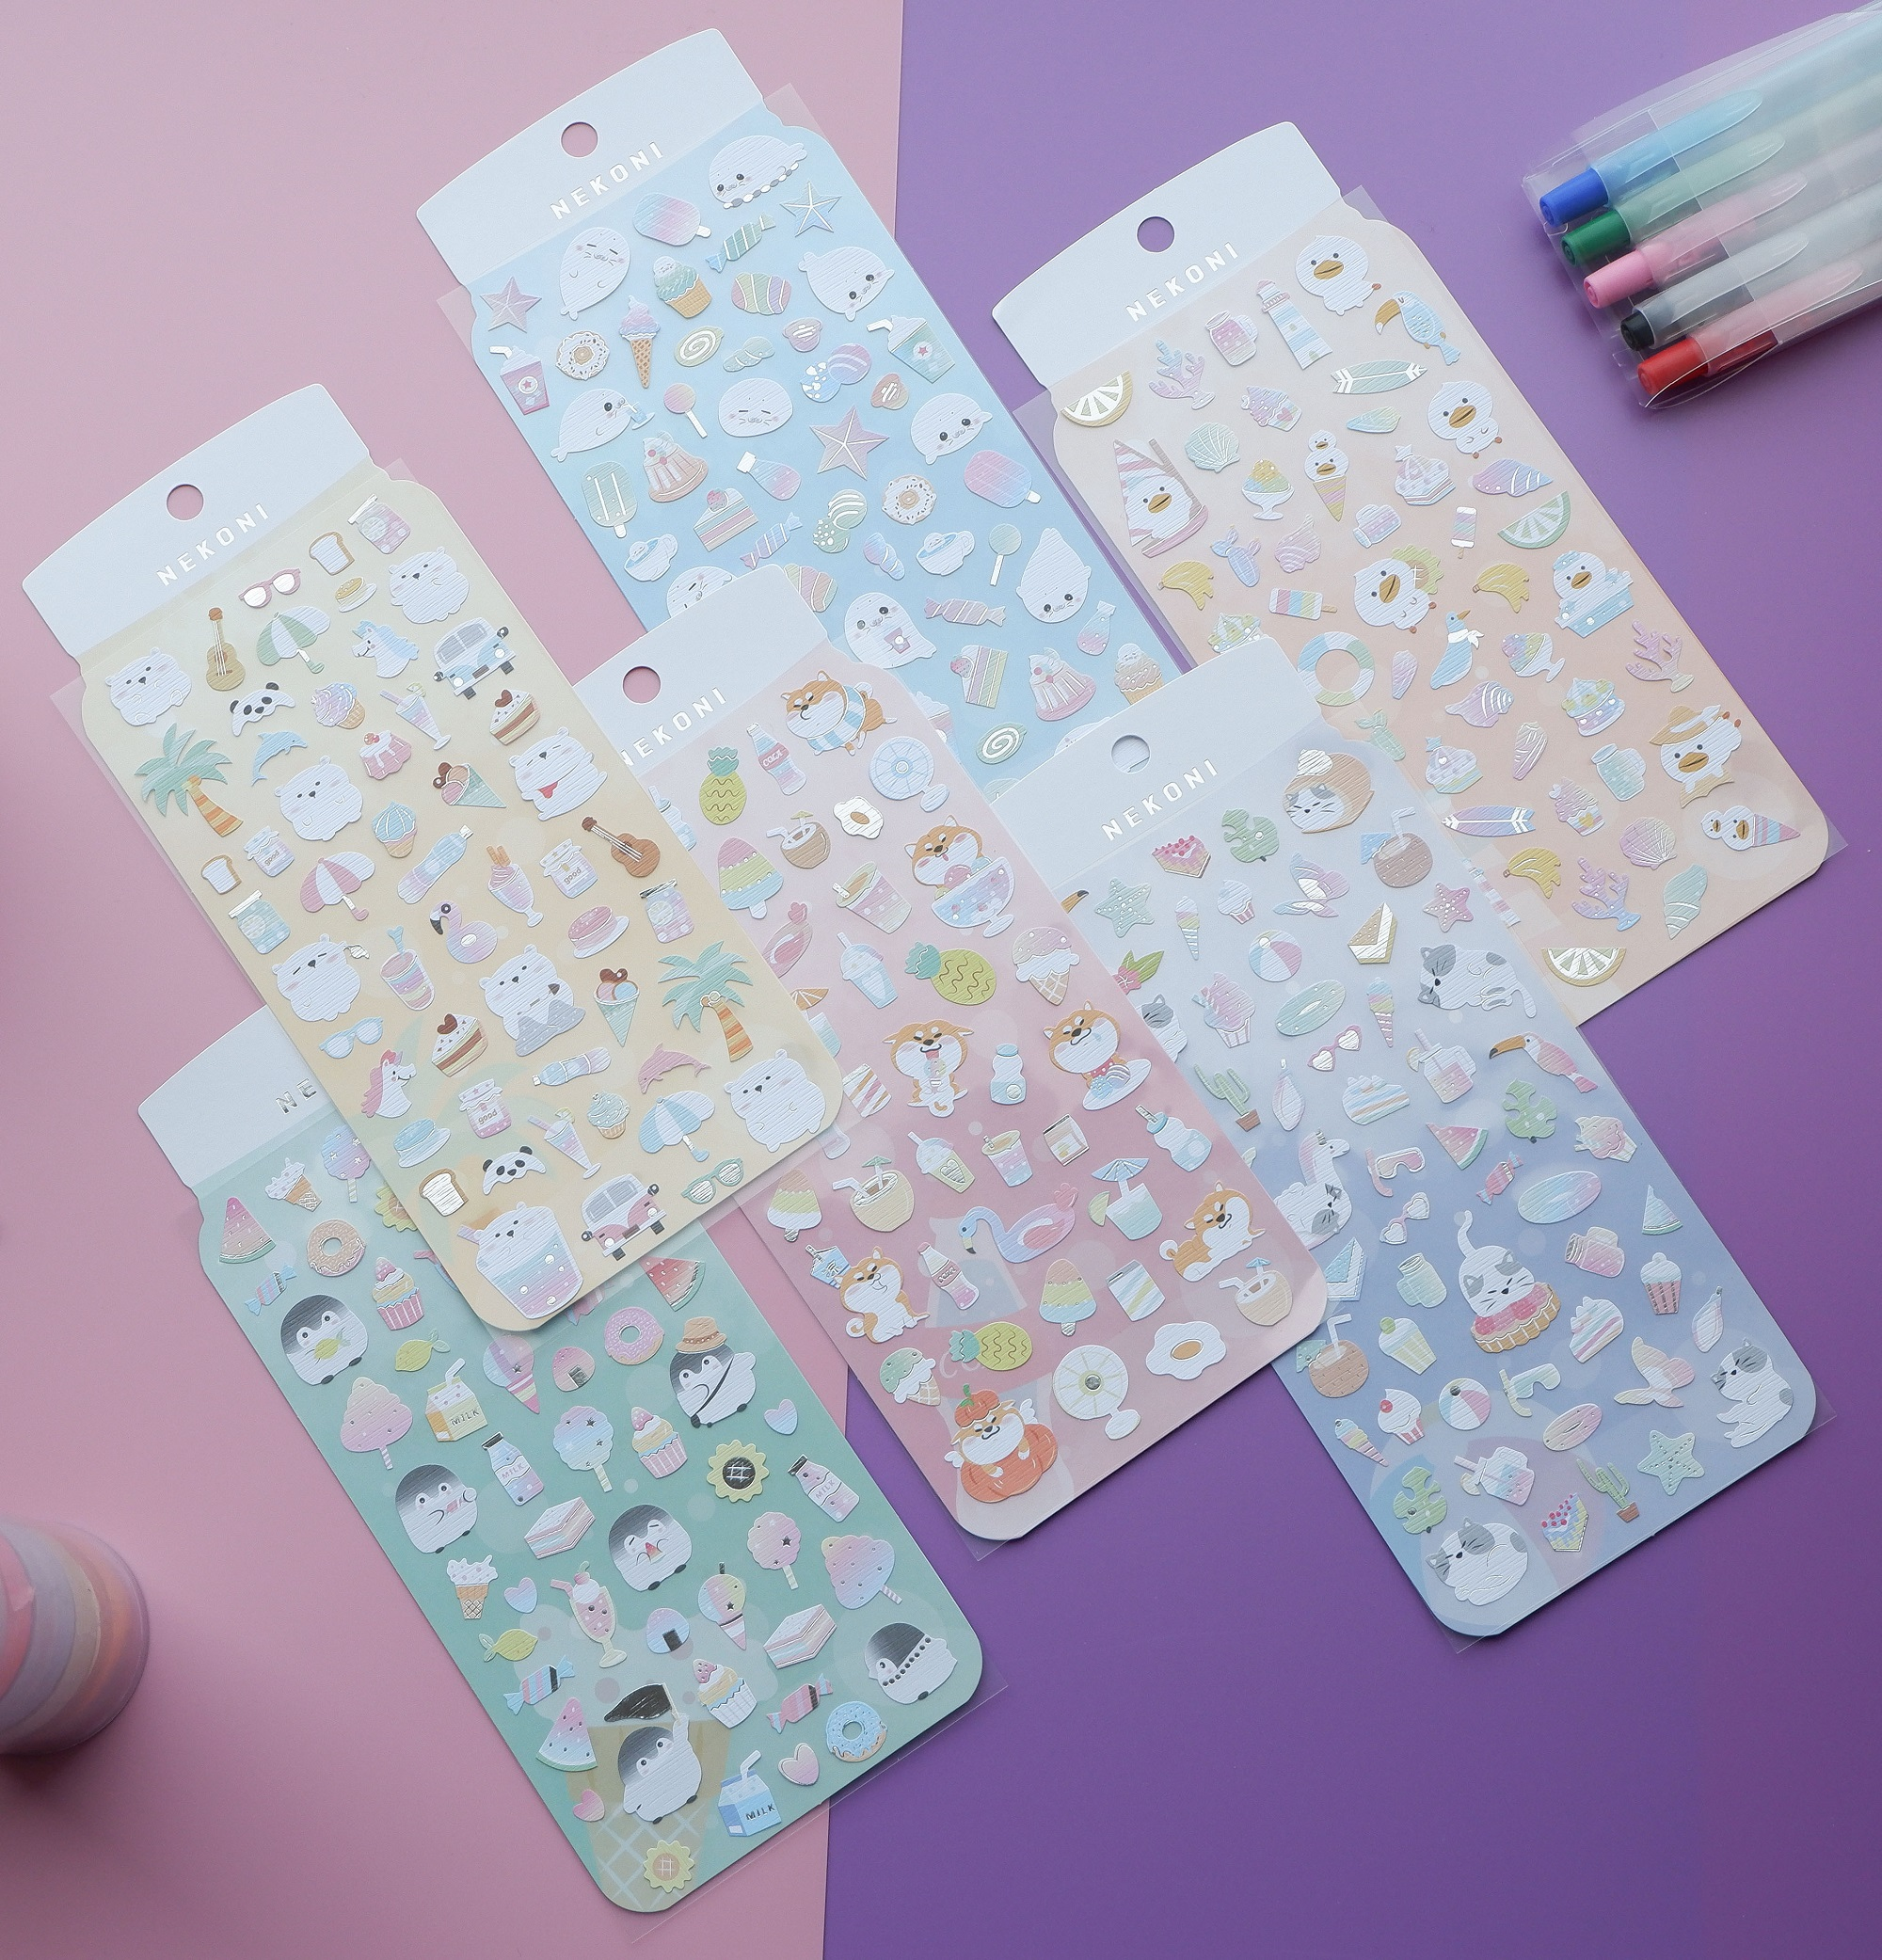 Animal Cold Drink Ice Cream Kawaii Bullet Journal Plane Decorative Stationery Stickers Scrapbooking DIY Diary Album Stick Label